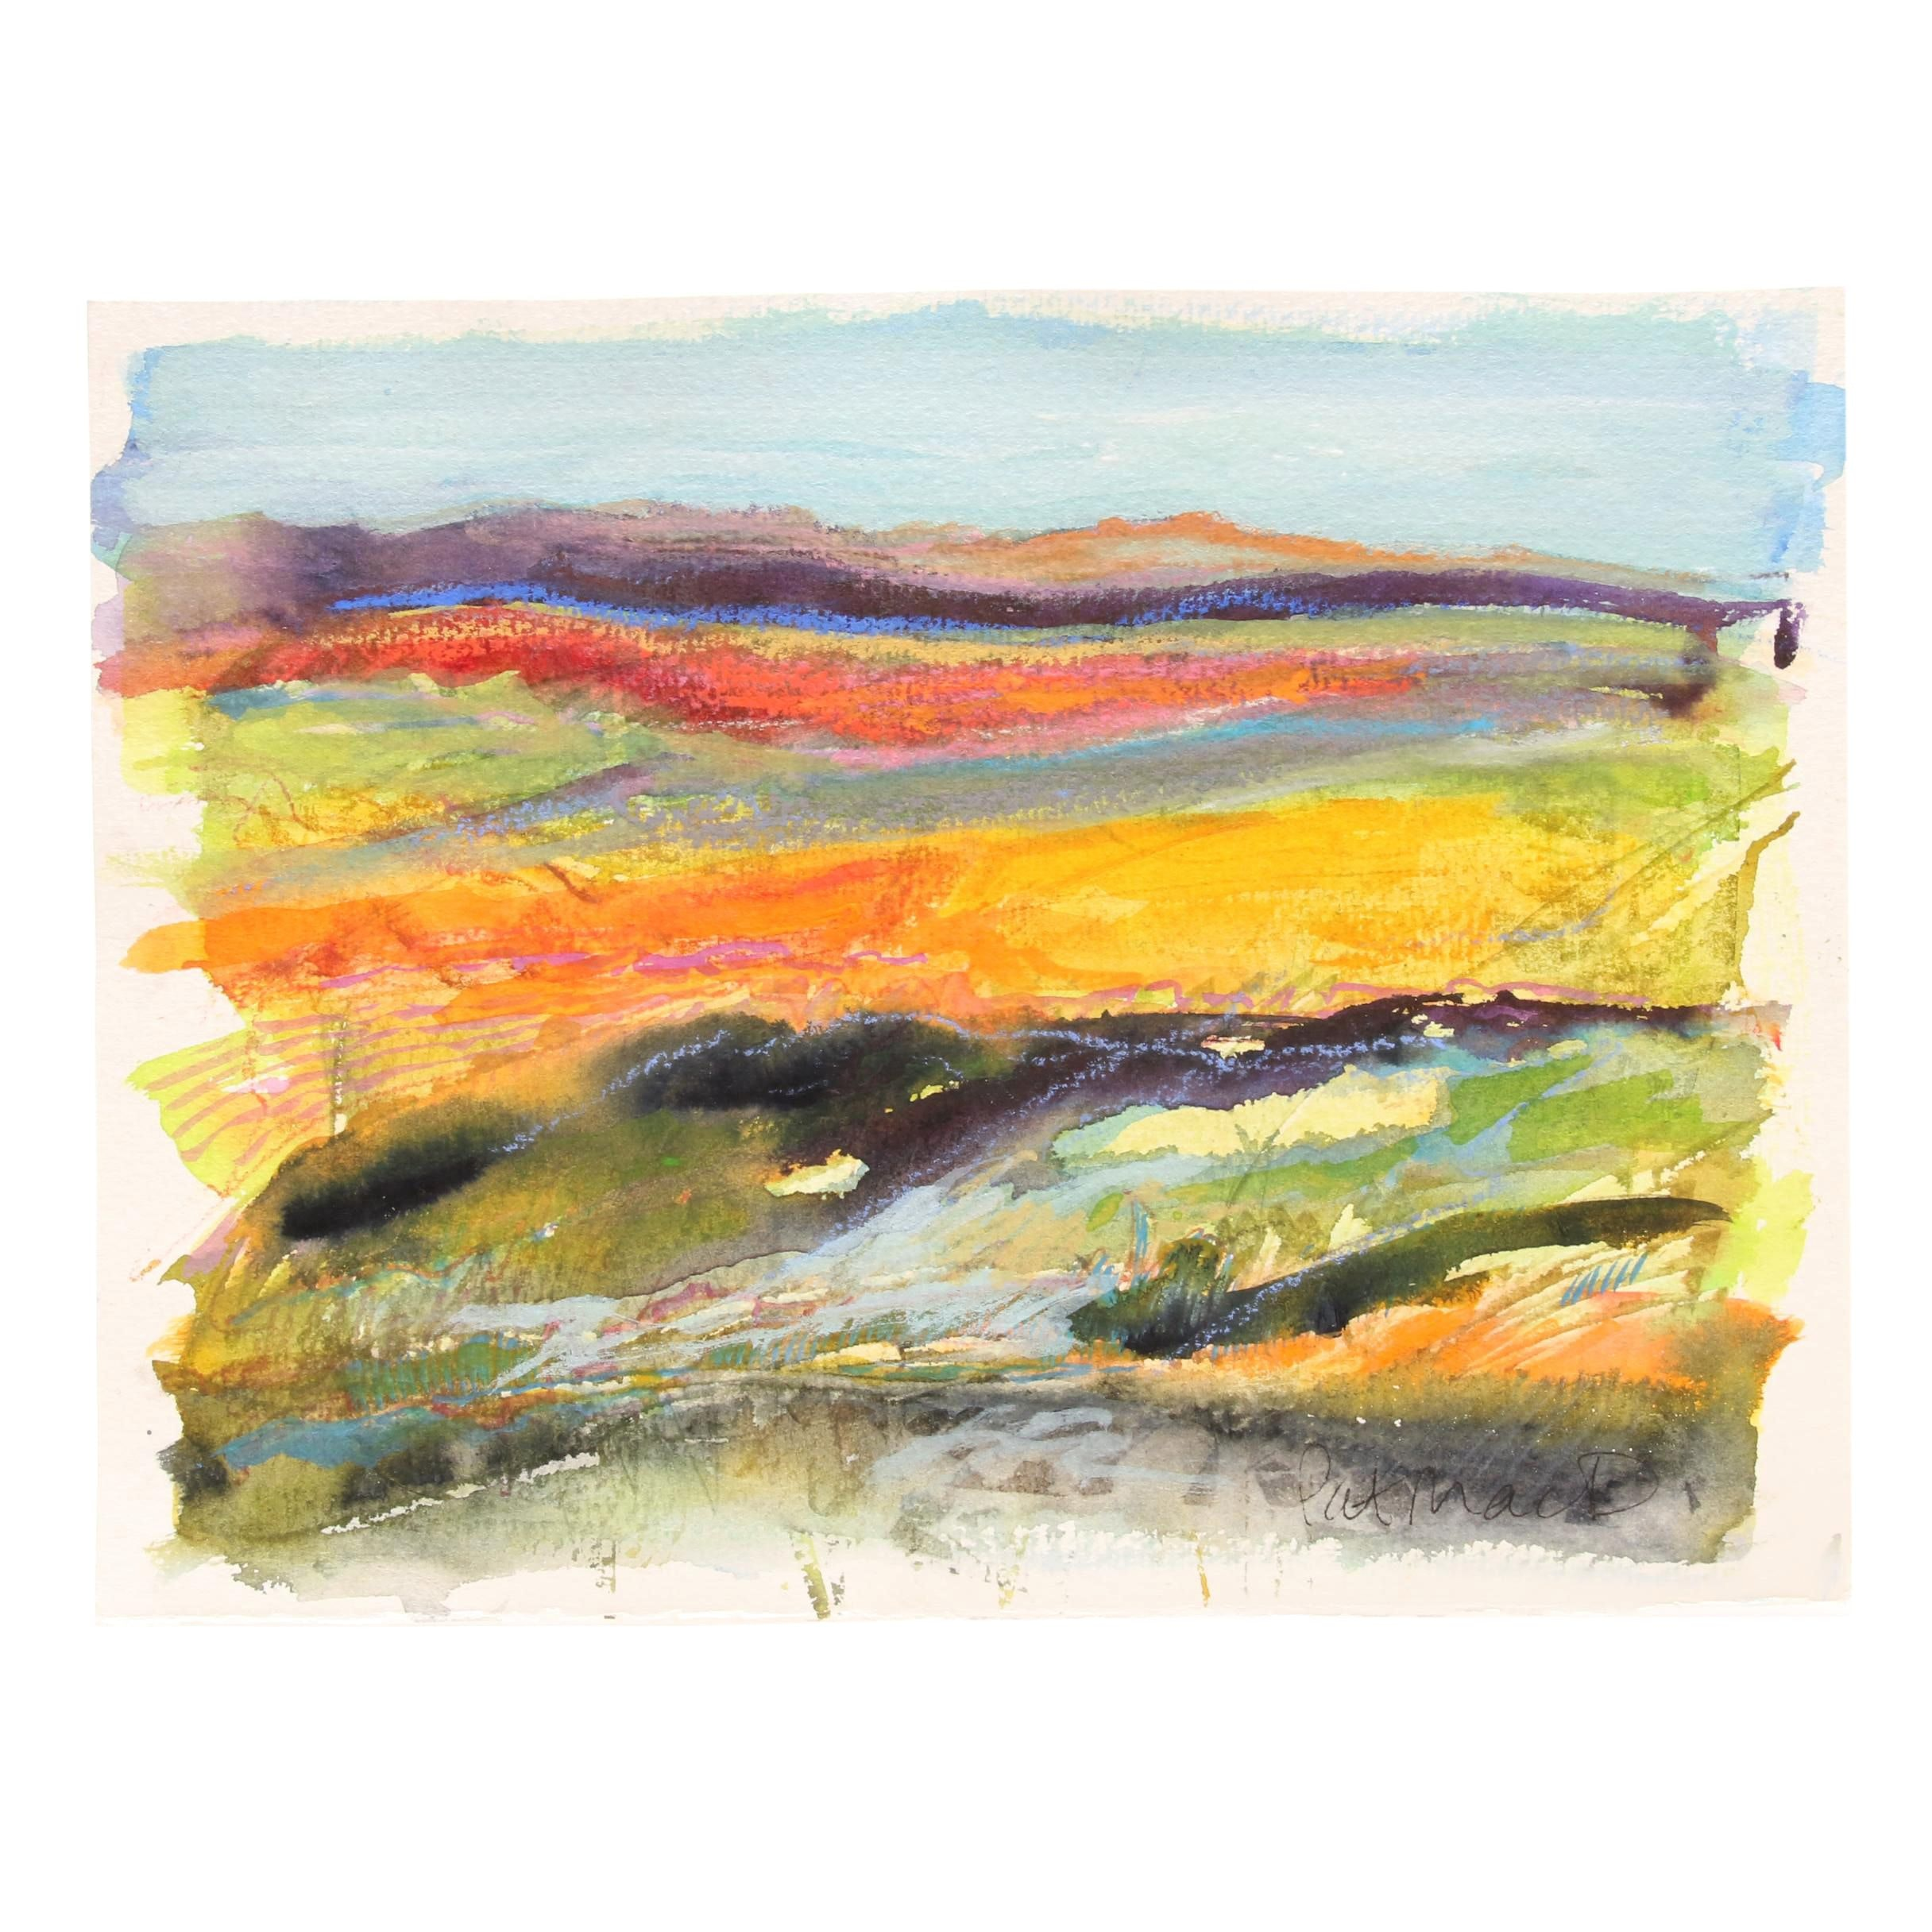 Pat MacDonald Abstract Watercolor and Pastel Landscape Painting